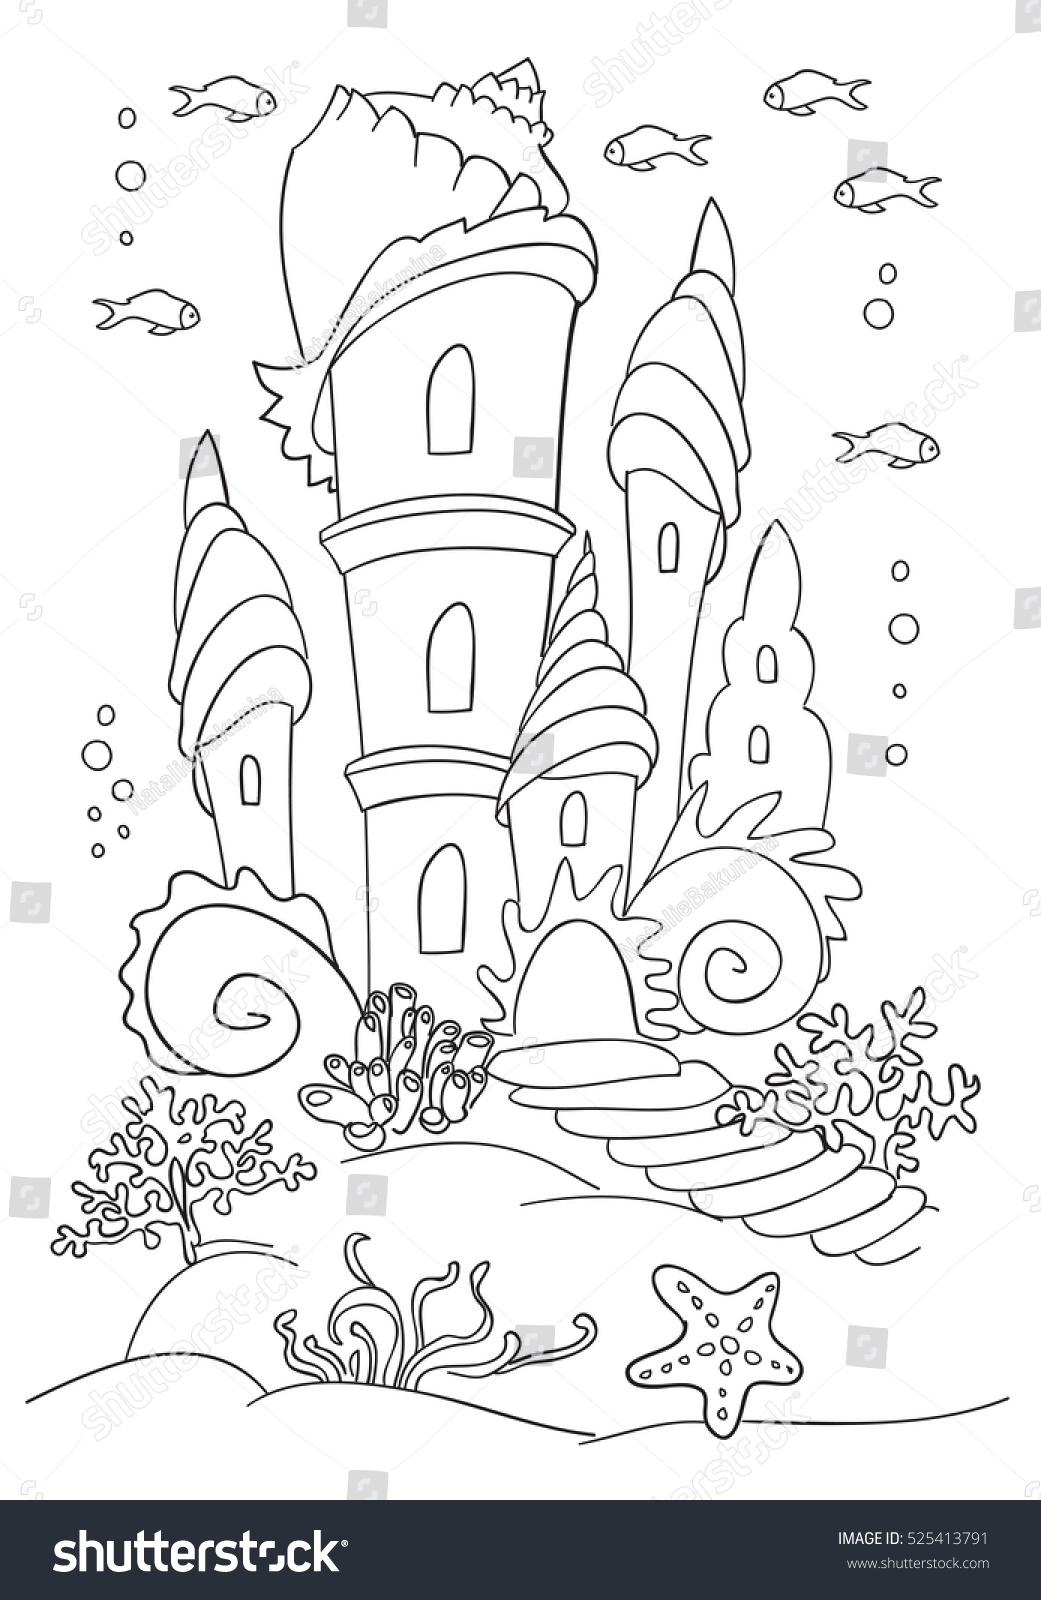 Mermaid S Castle At Ocean Bottom Coloring Book Page Black And Wight Doodle